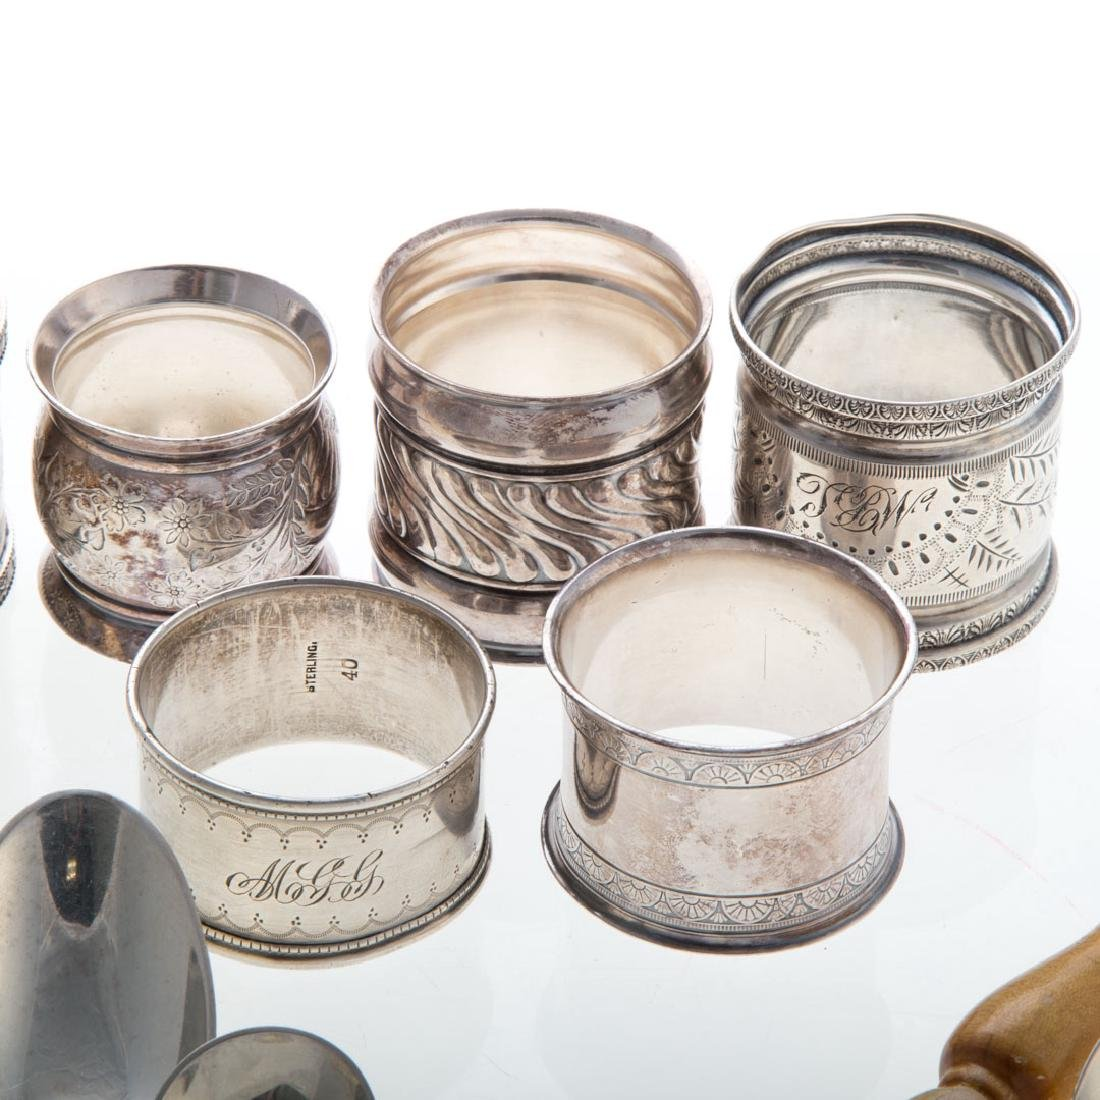 Assorted silver flatware and napkin rings - 5